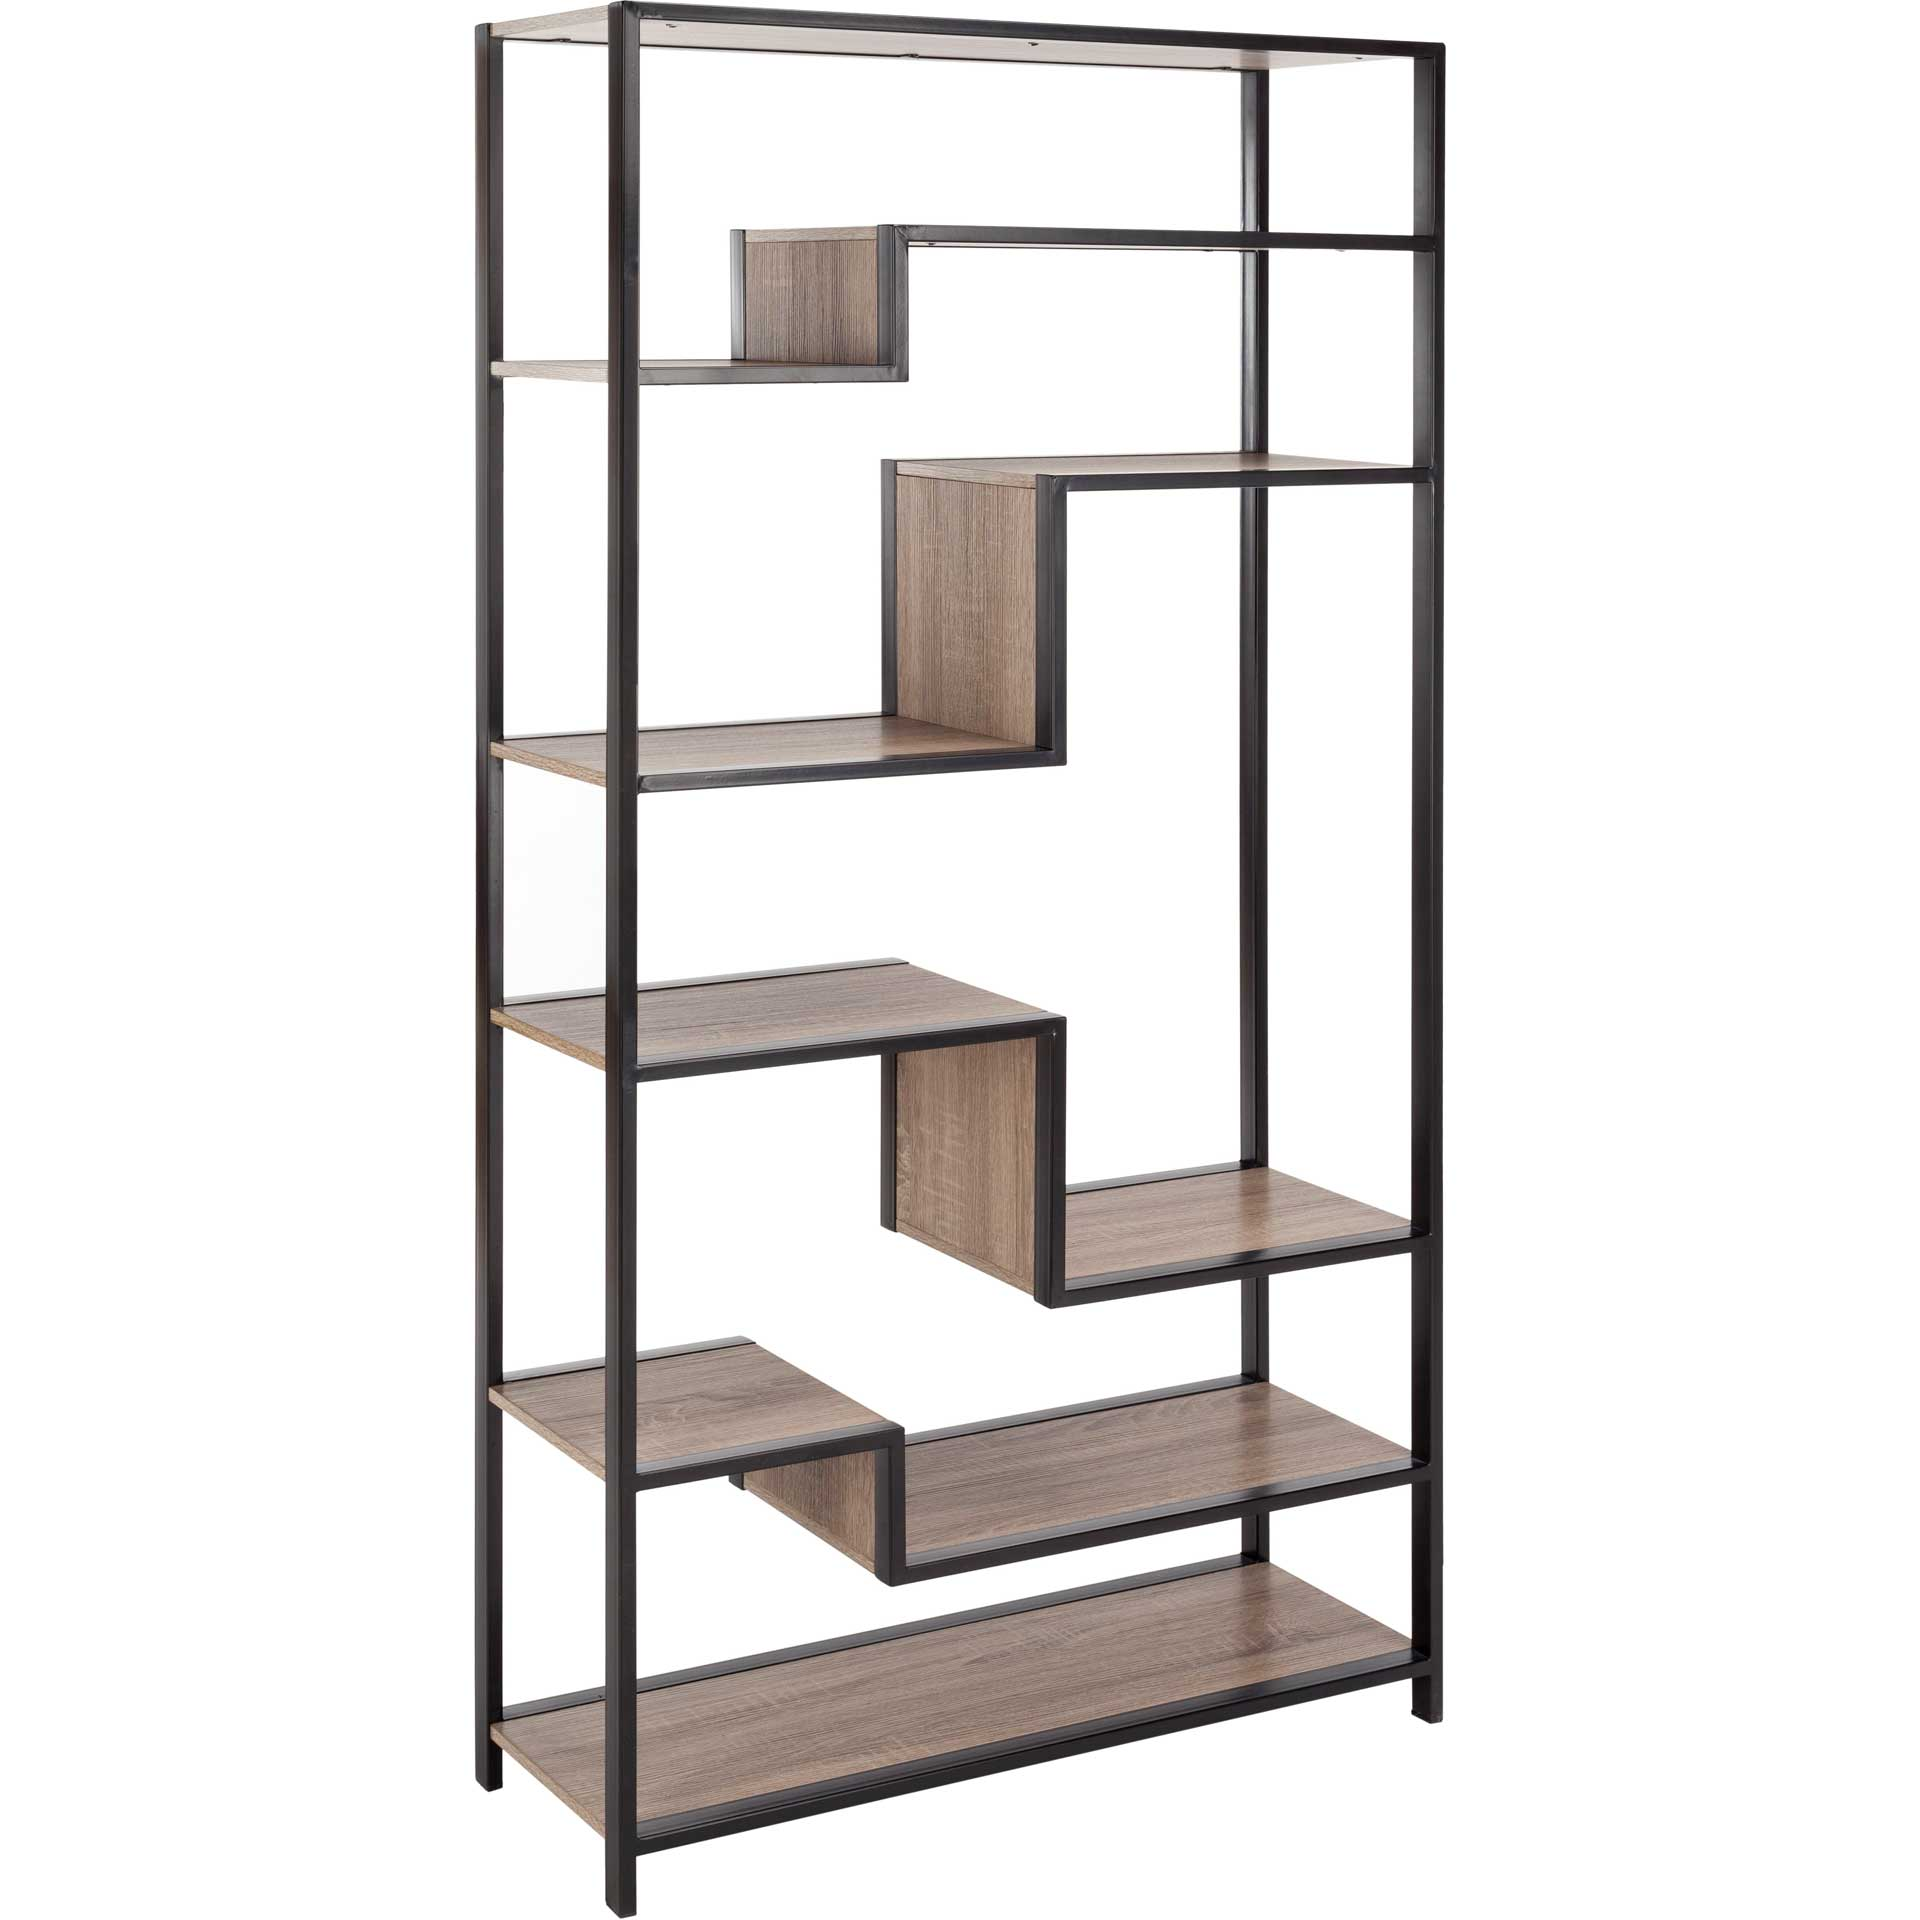 Jordan Retro Mid Century Wood Etagere Oak/Black